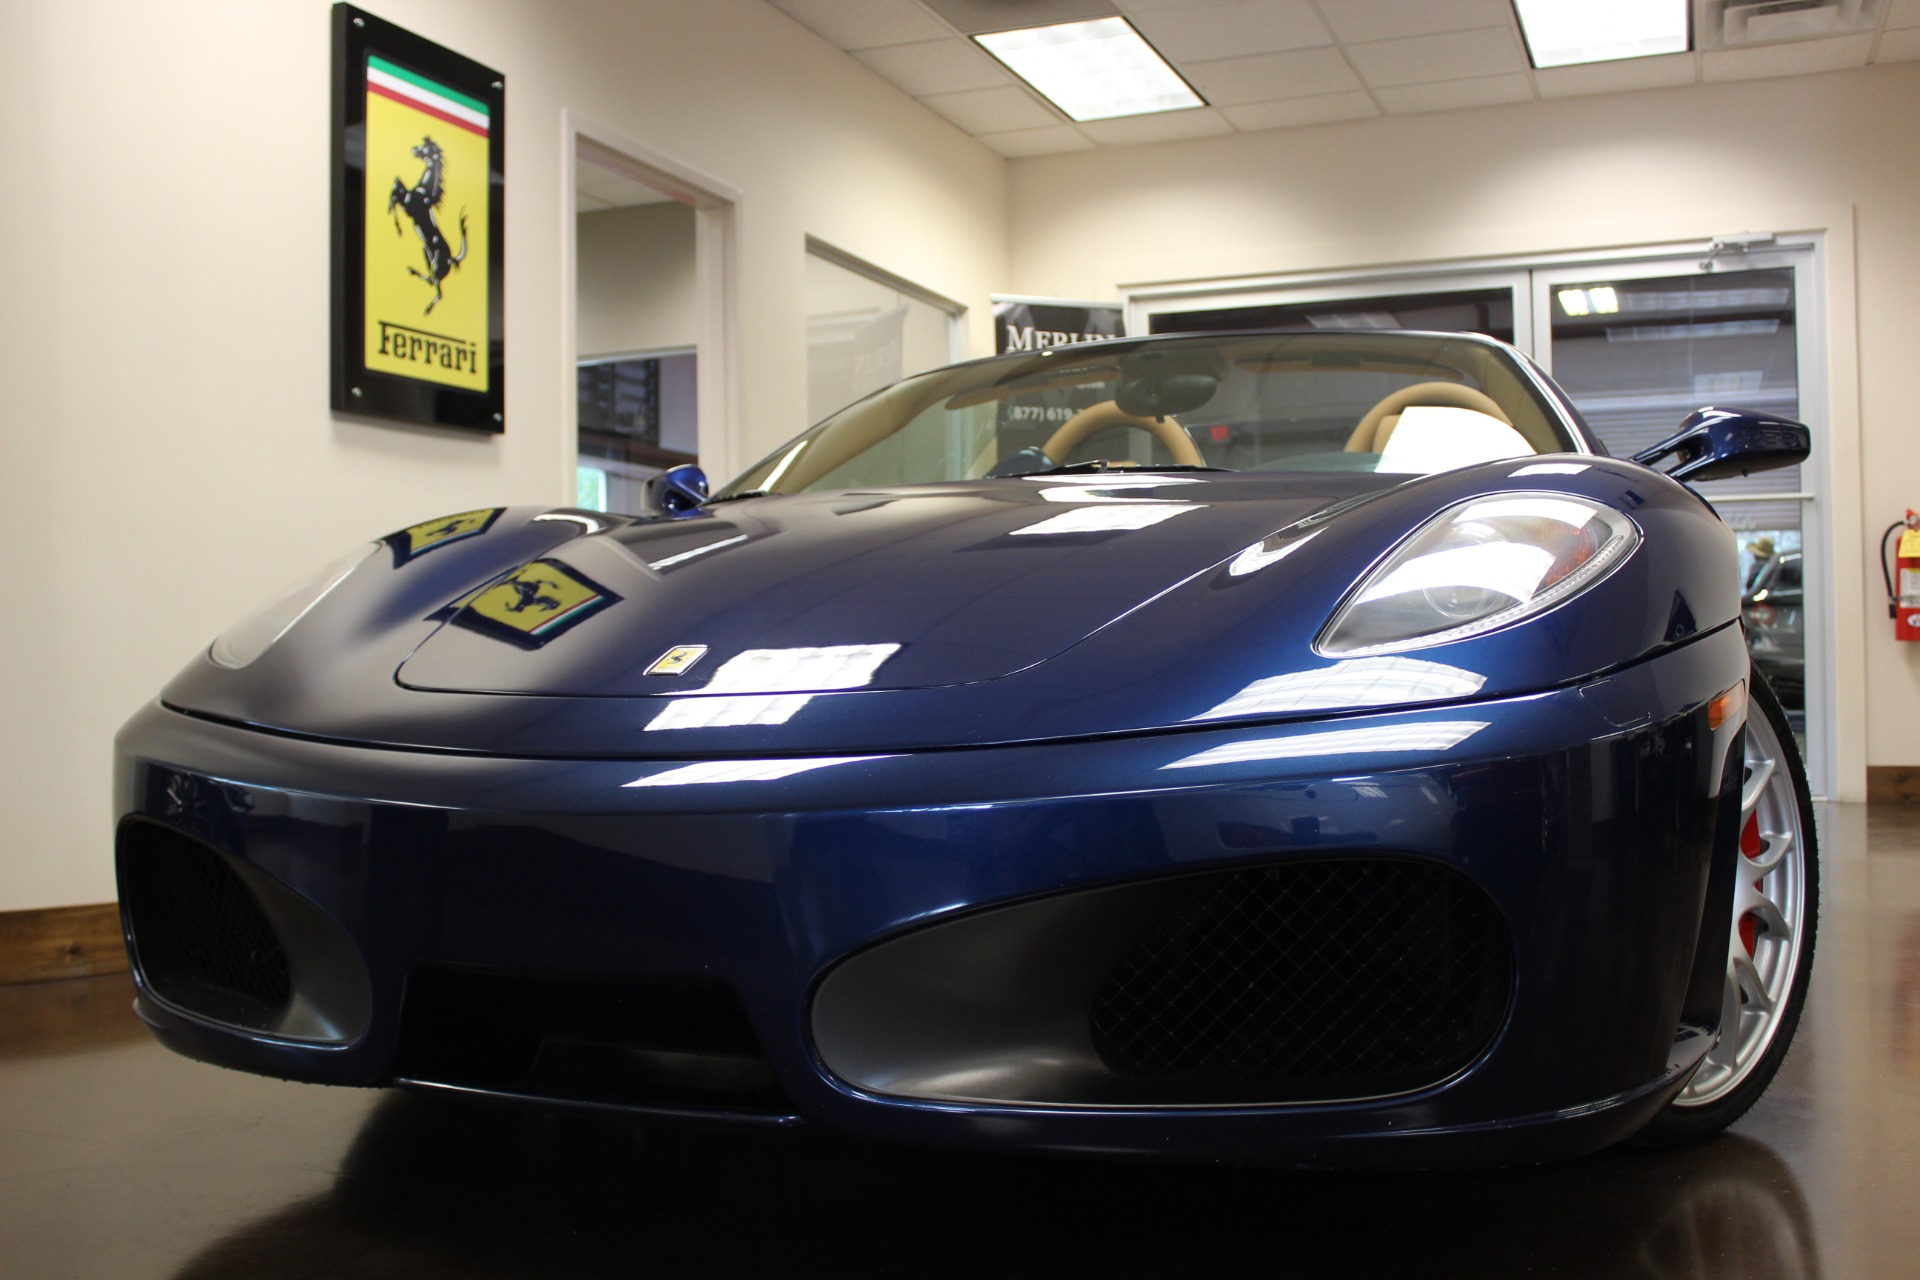 Used 2009 Ferrari F430 Stock P3048a Ultra Luxury Car